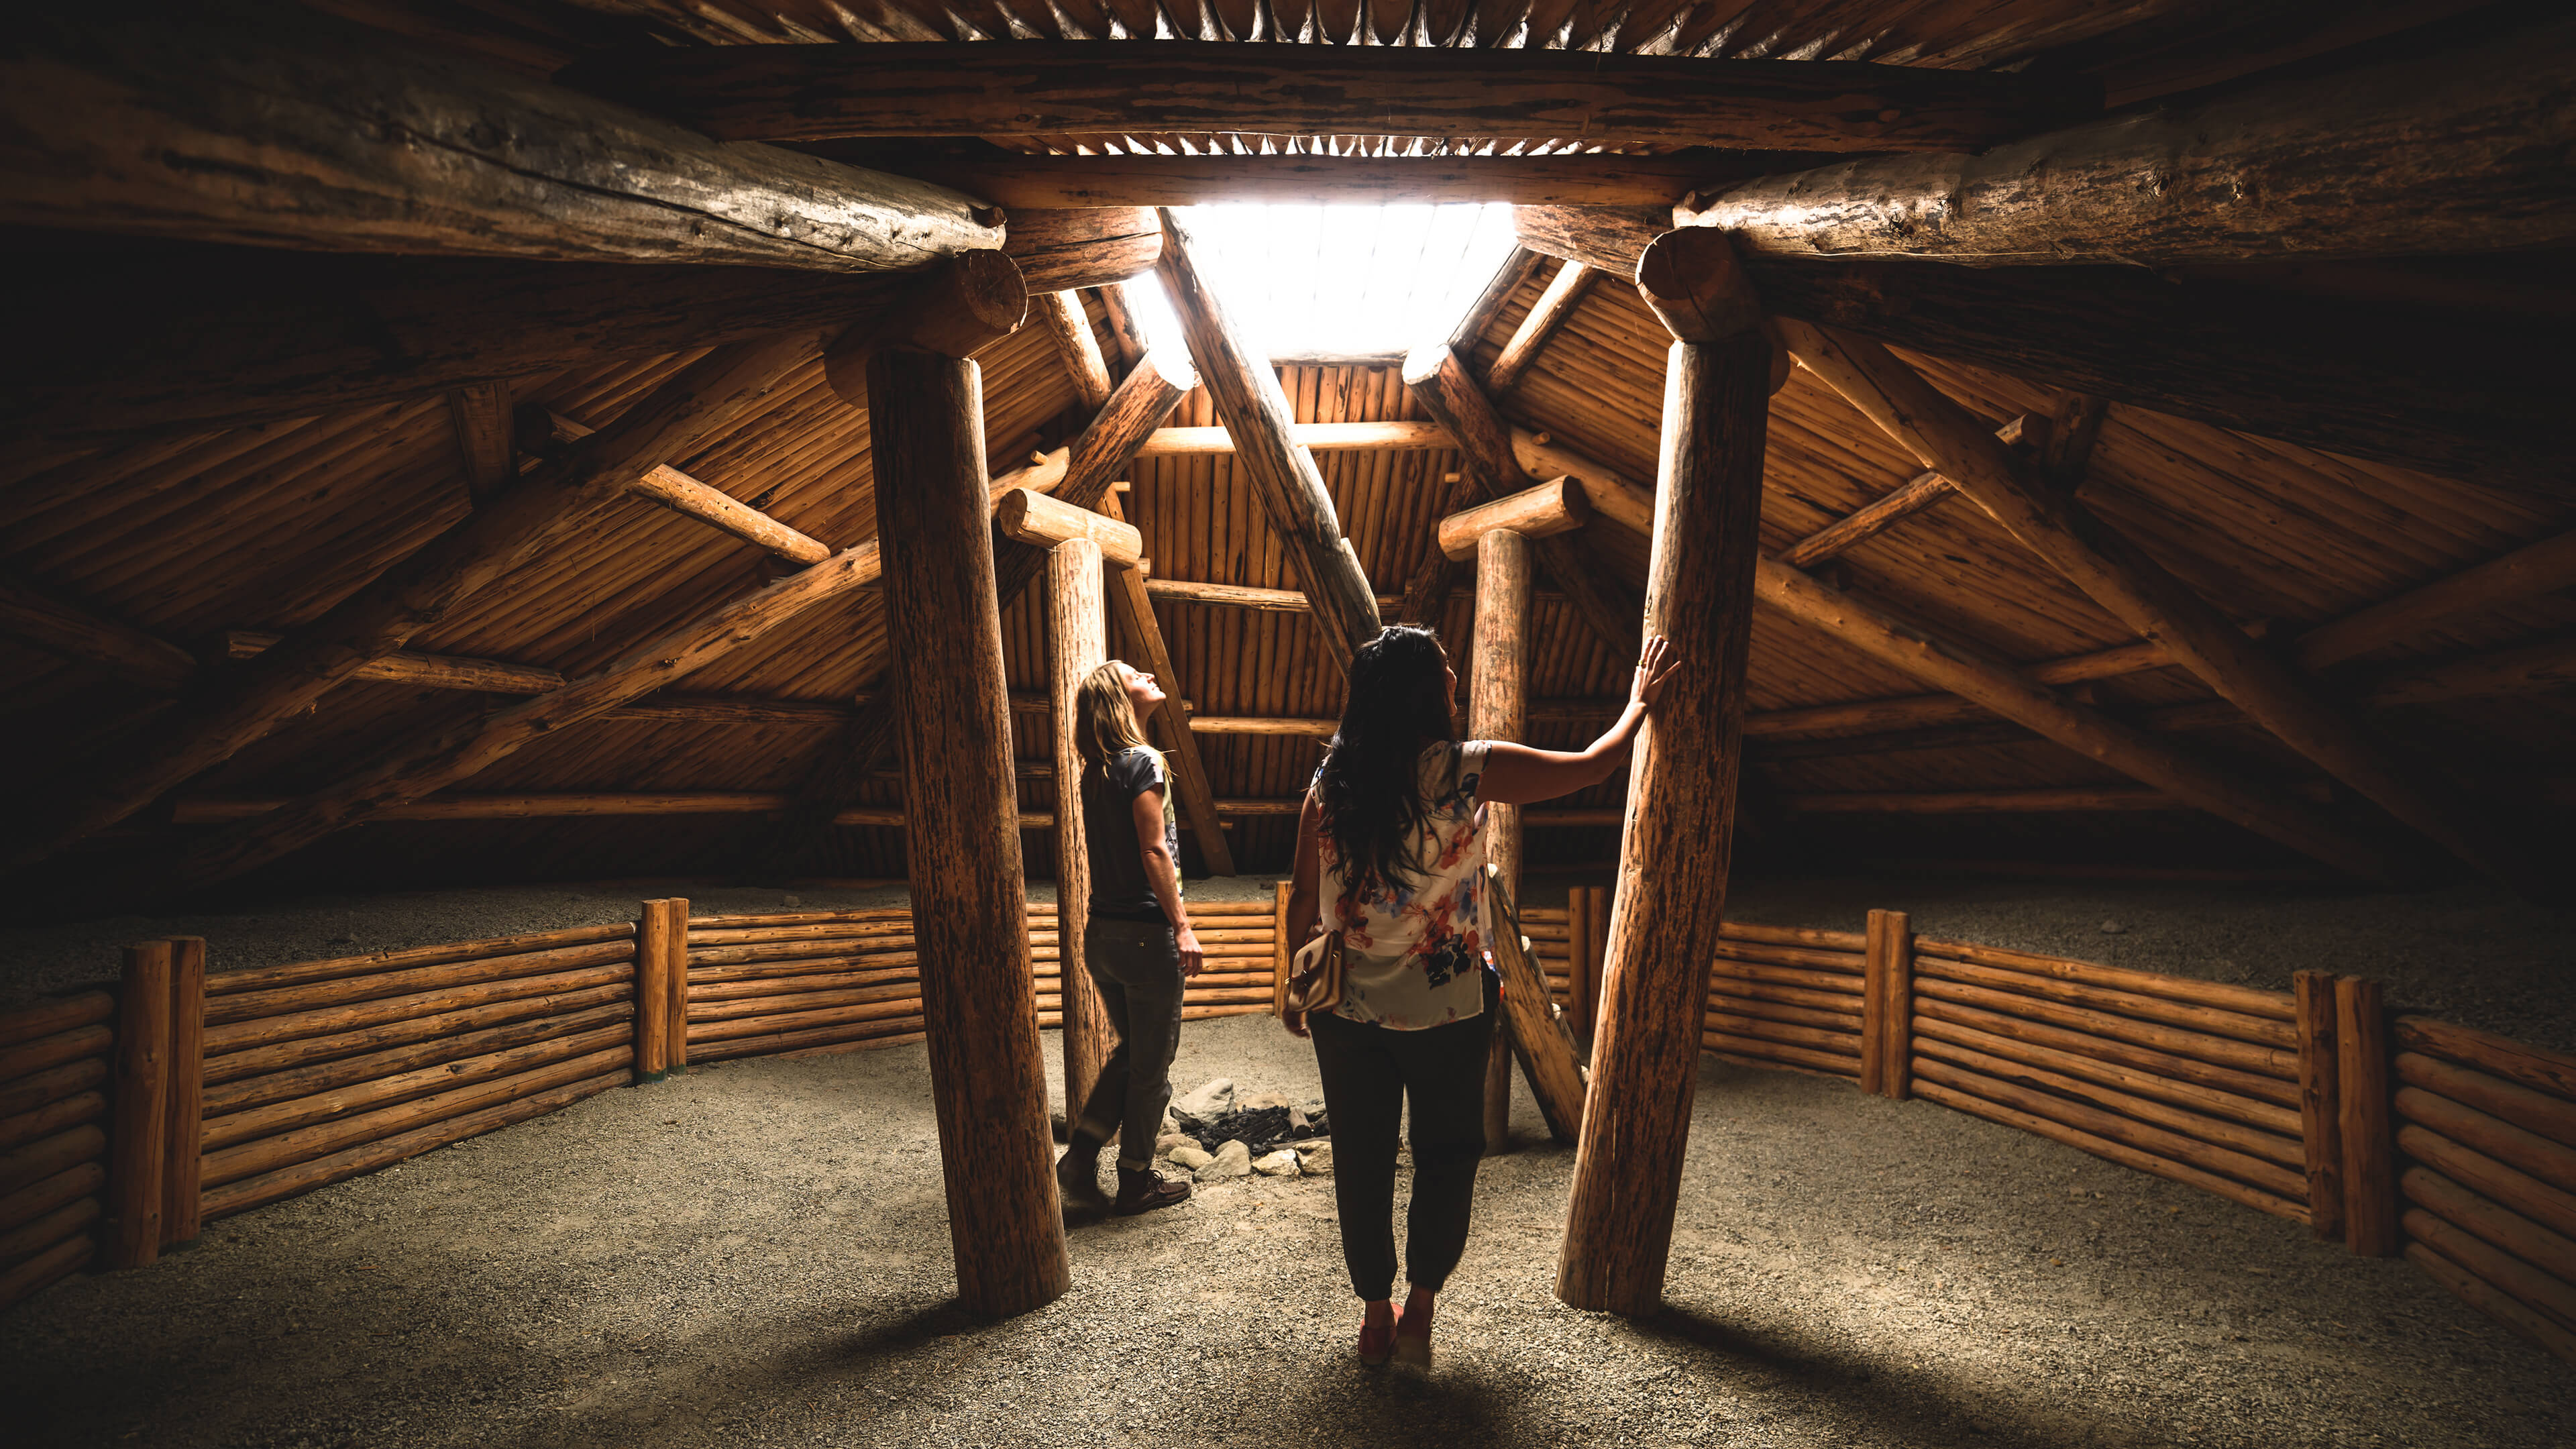 10 Indigenous Experiences in the South Okanagan10 Indigenous Experiences in the South Okanagan